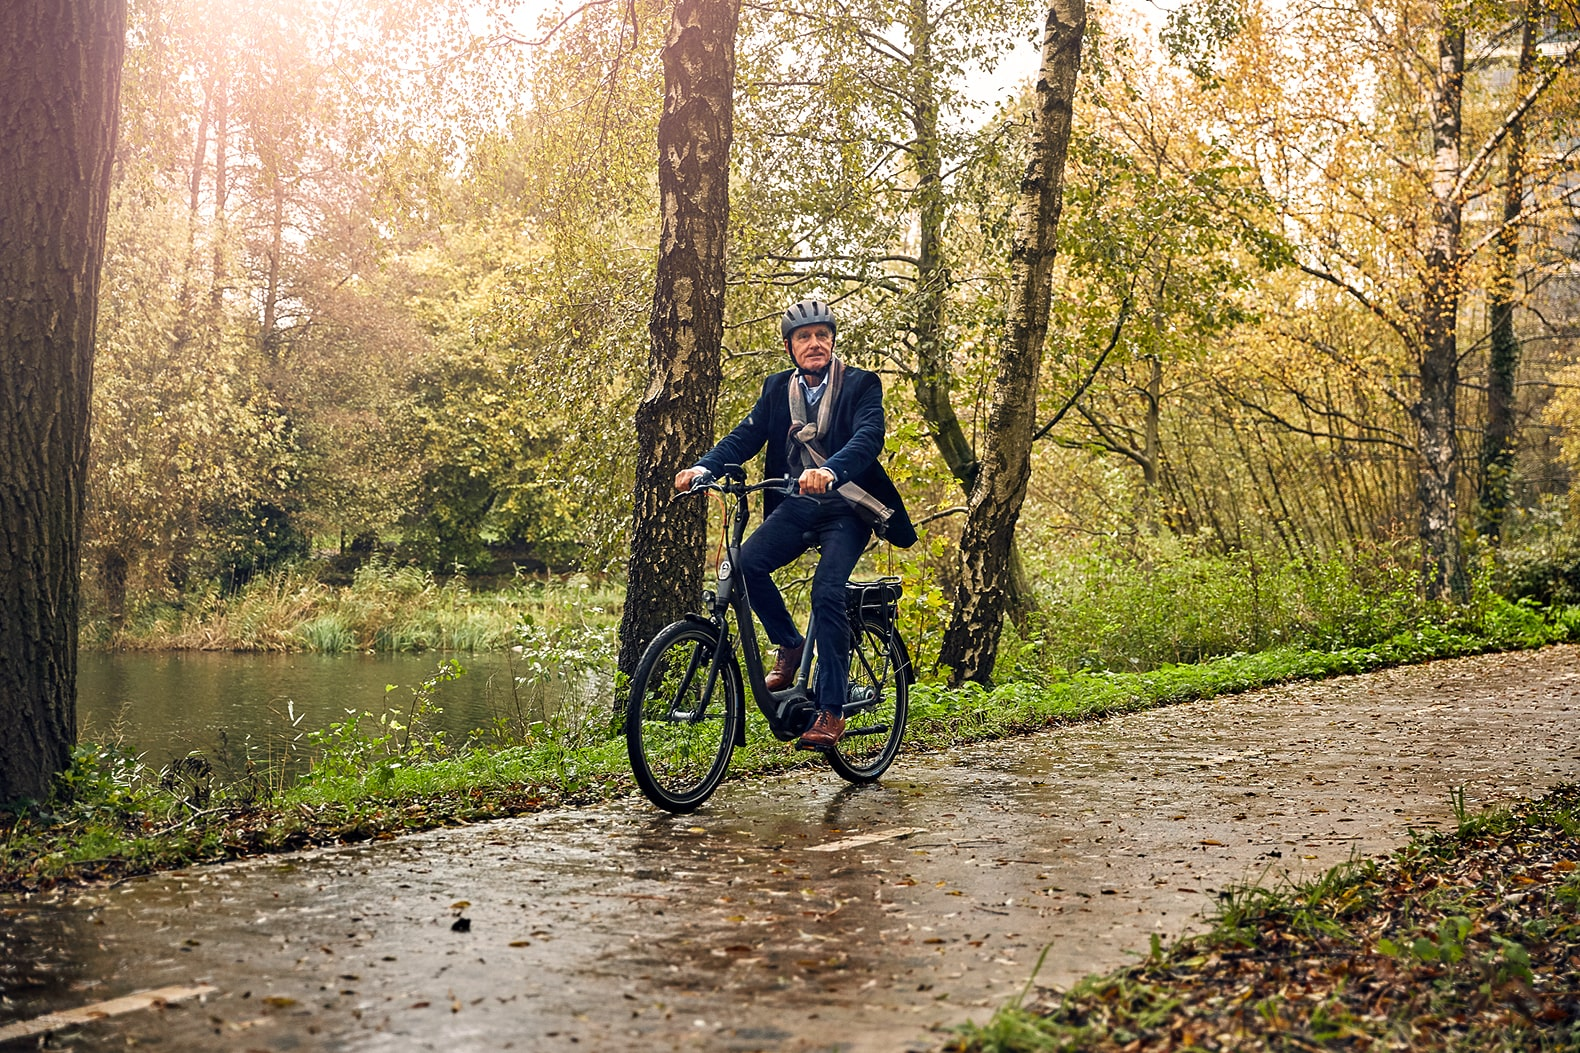 Man on a bicycle | Ami C8